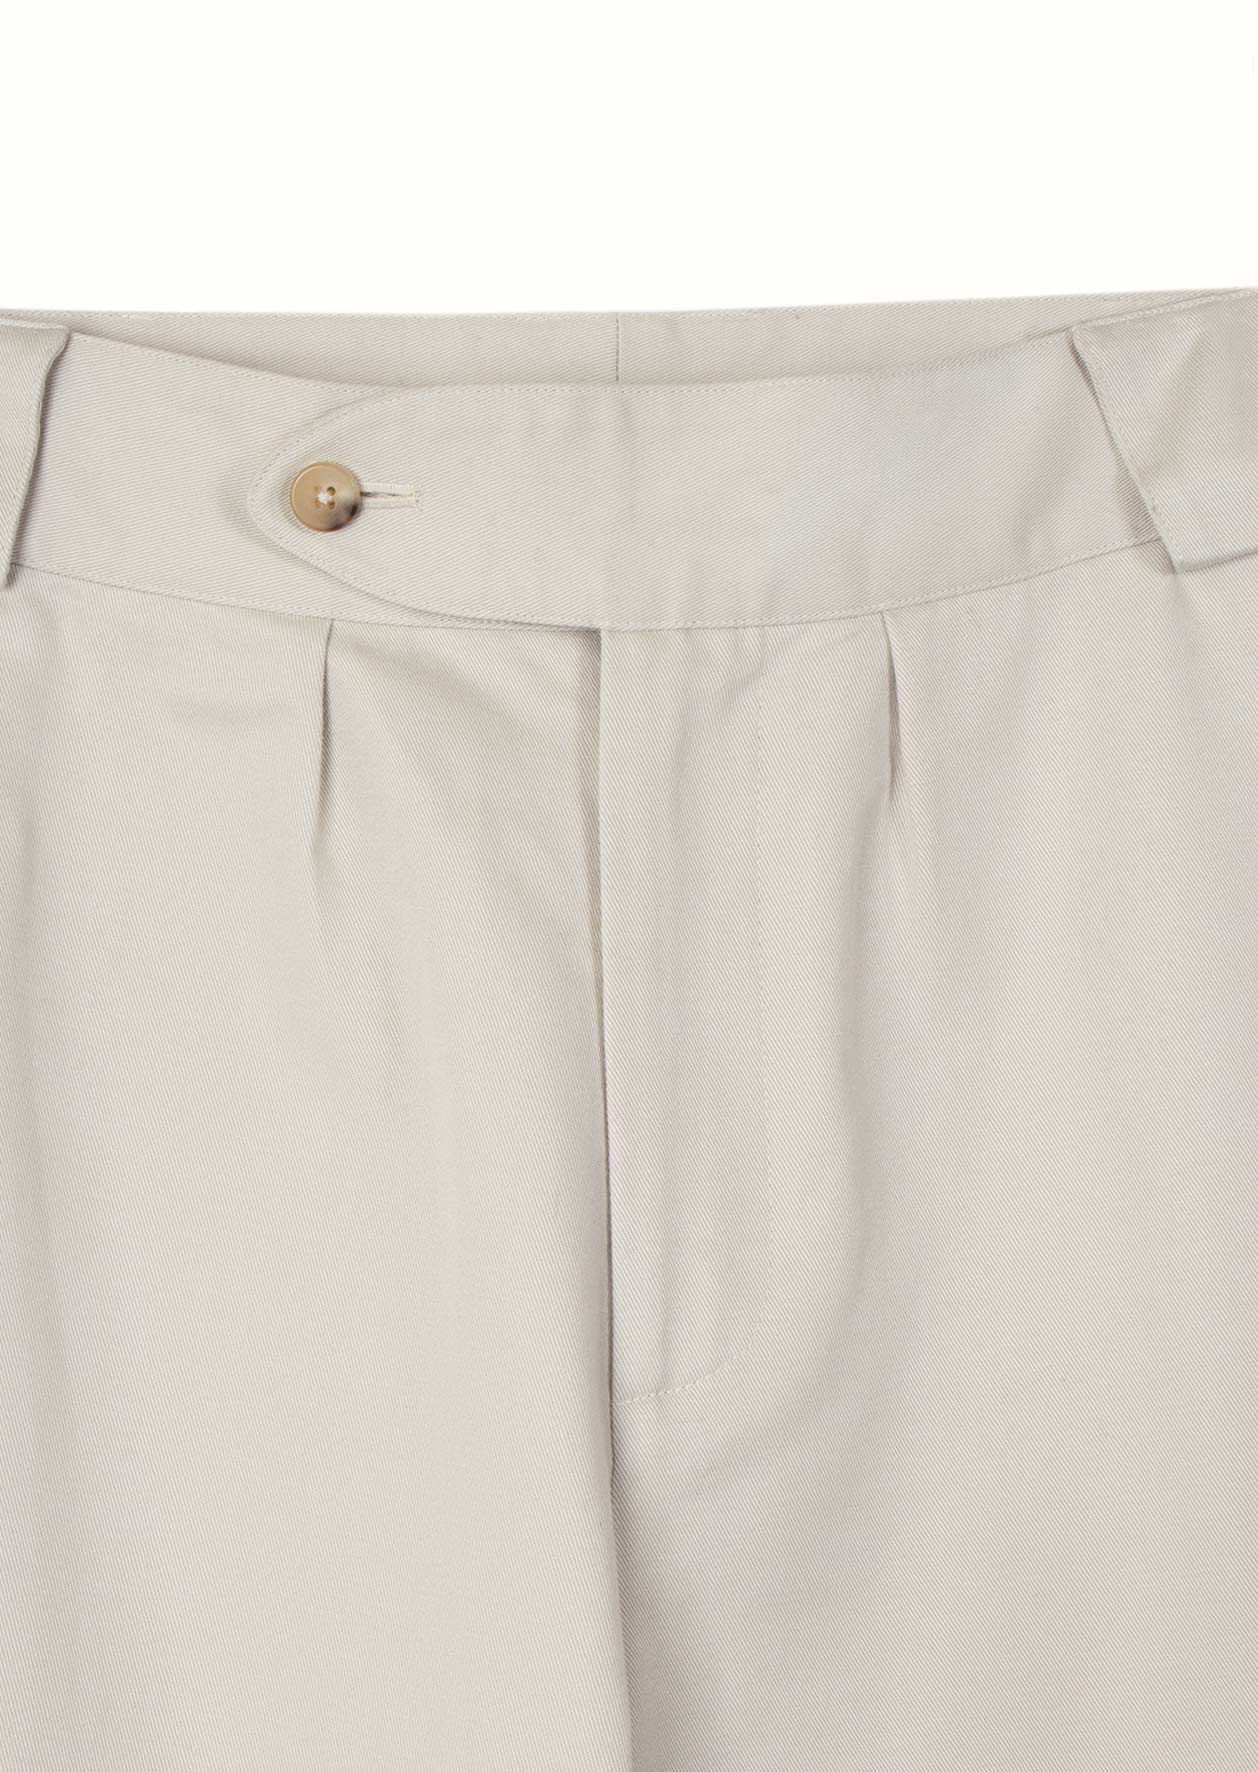 De Bonne Facture - De Bonne Facture - Hiking trousers - Japan cotton twill - Light grey